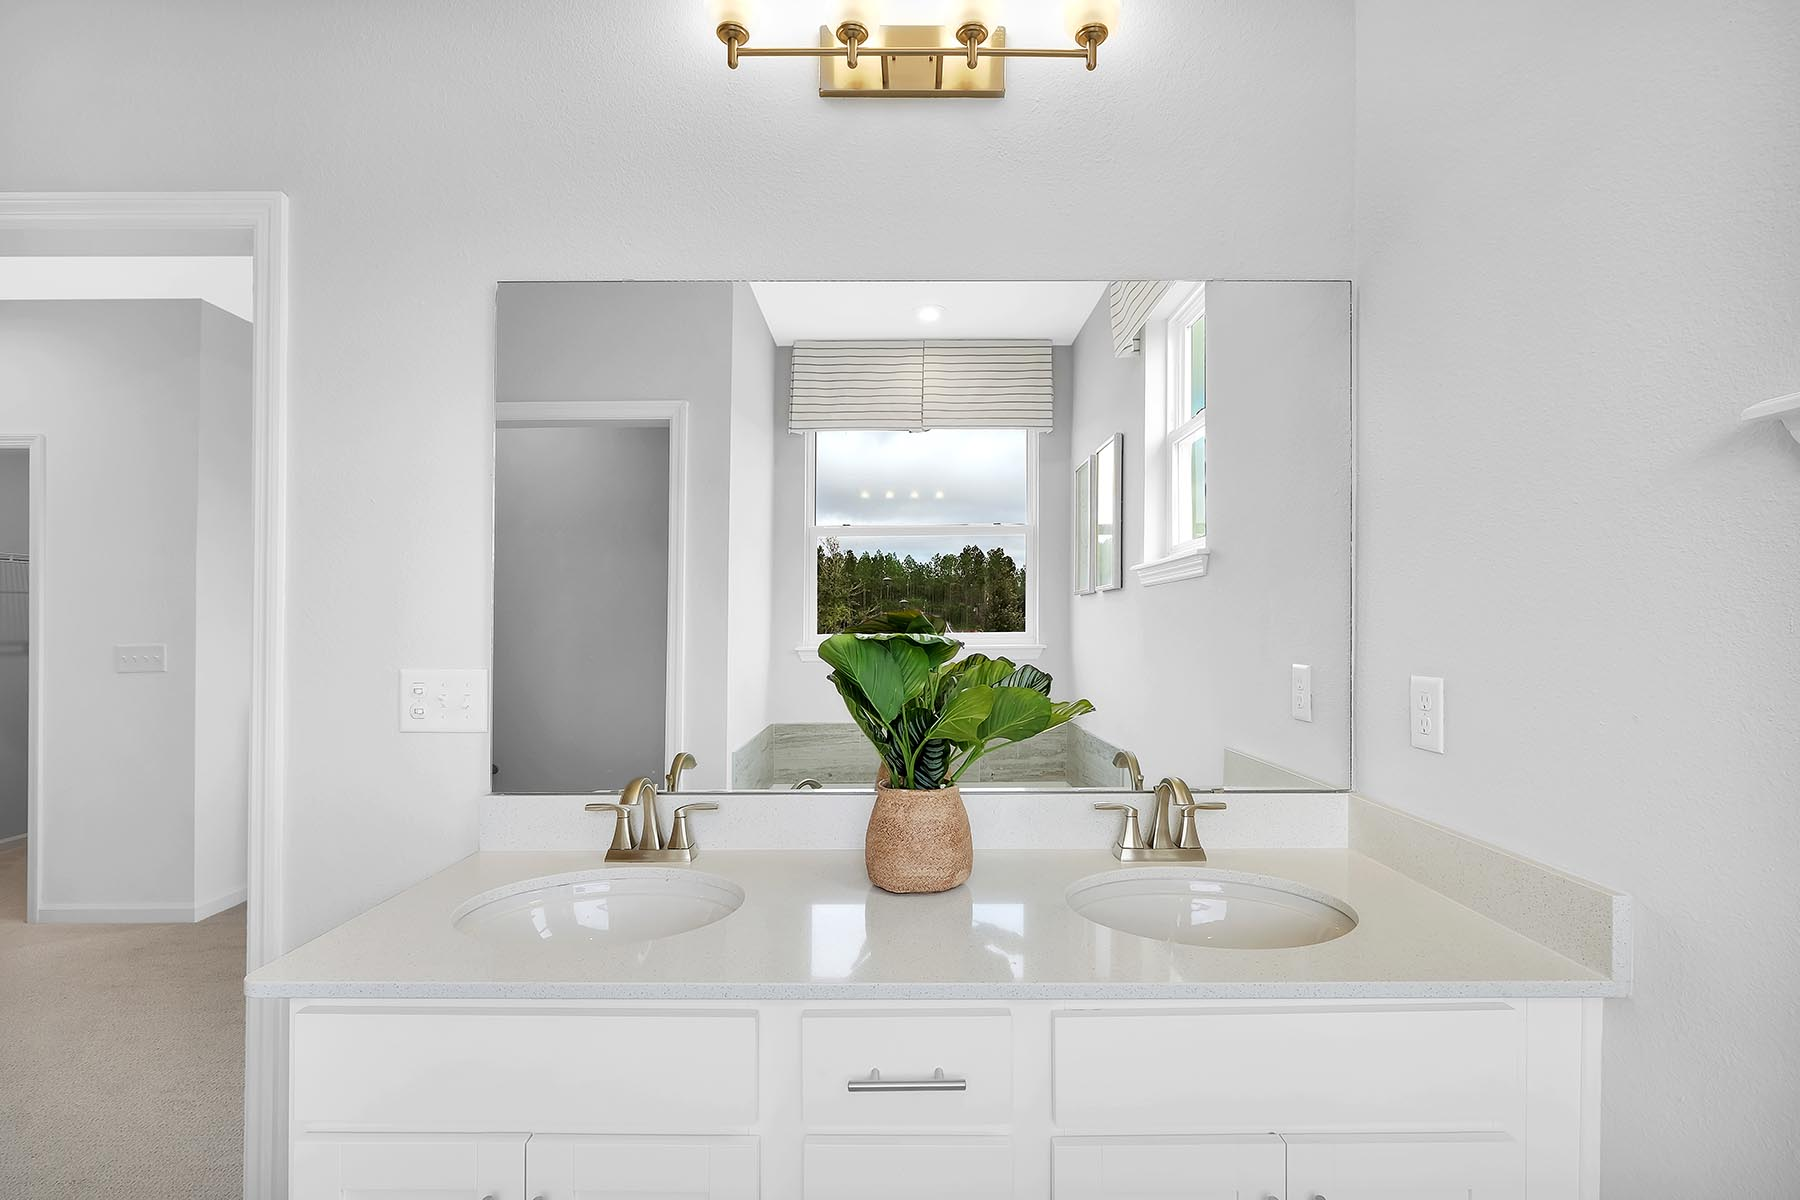 Elm Plan Bath at Forest Park at Wildlight in Yulee Florida by Mattamy Homes